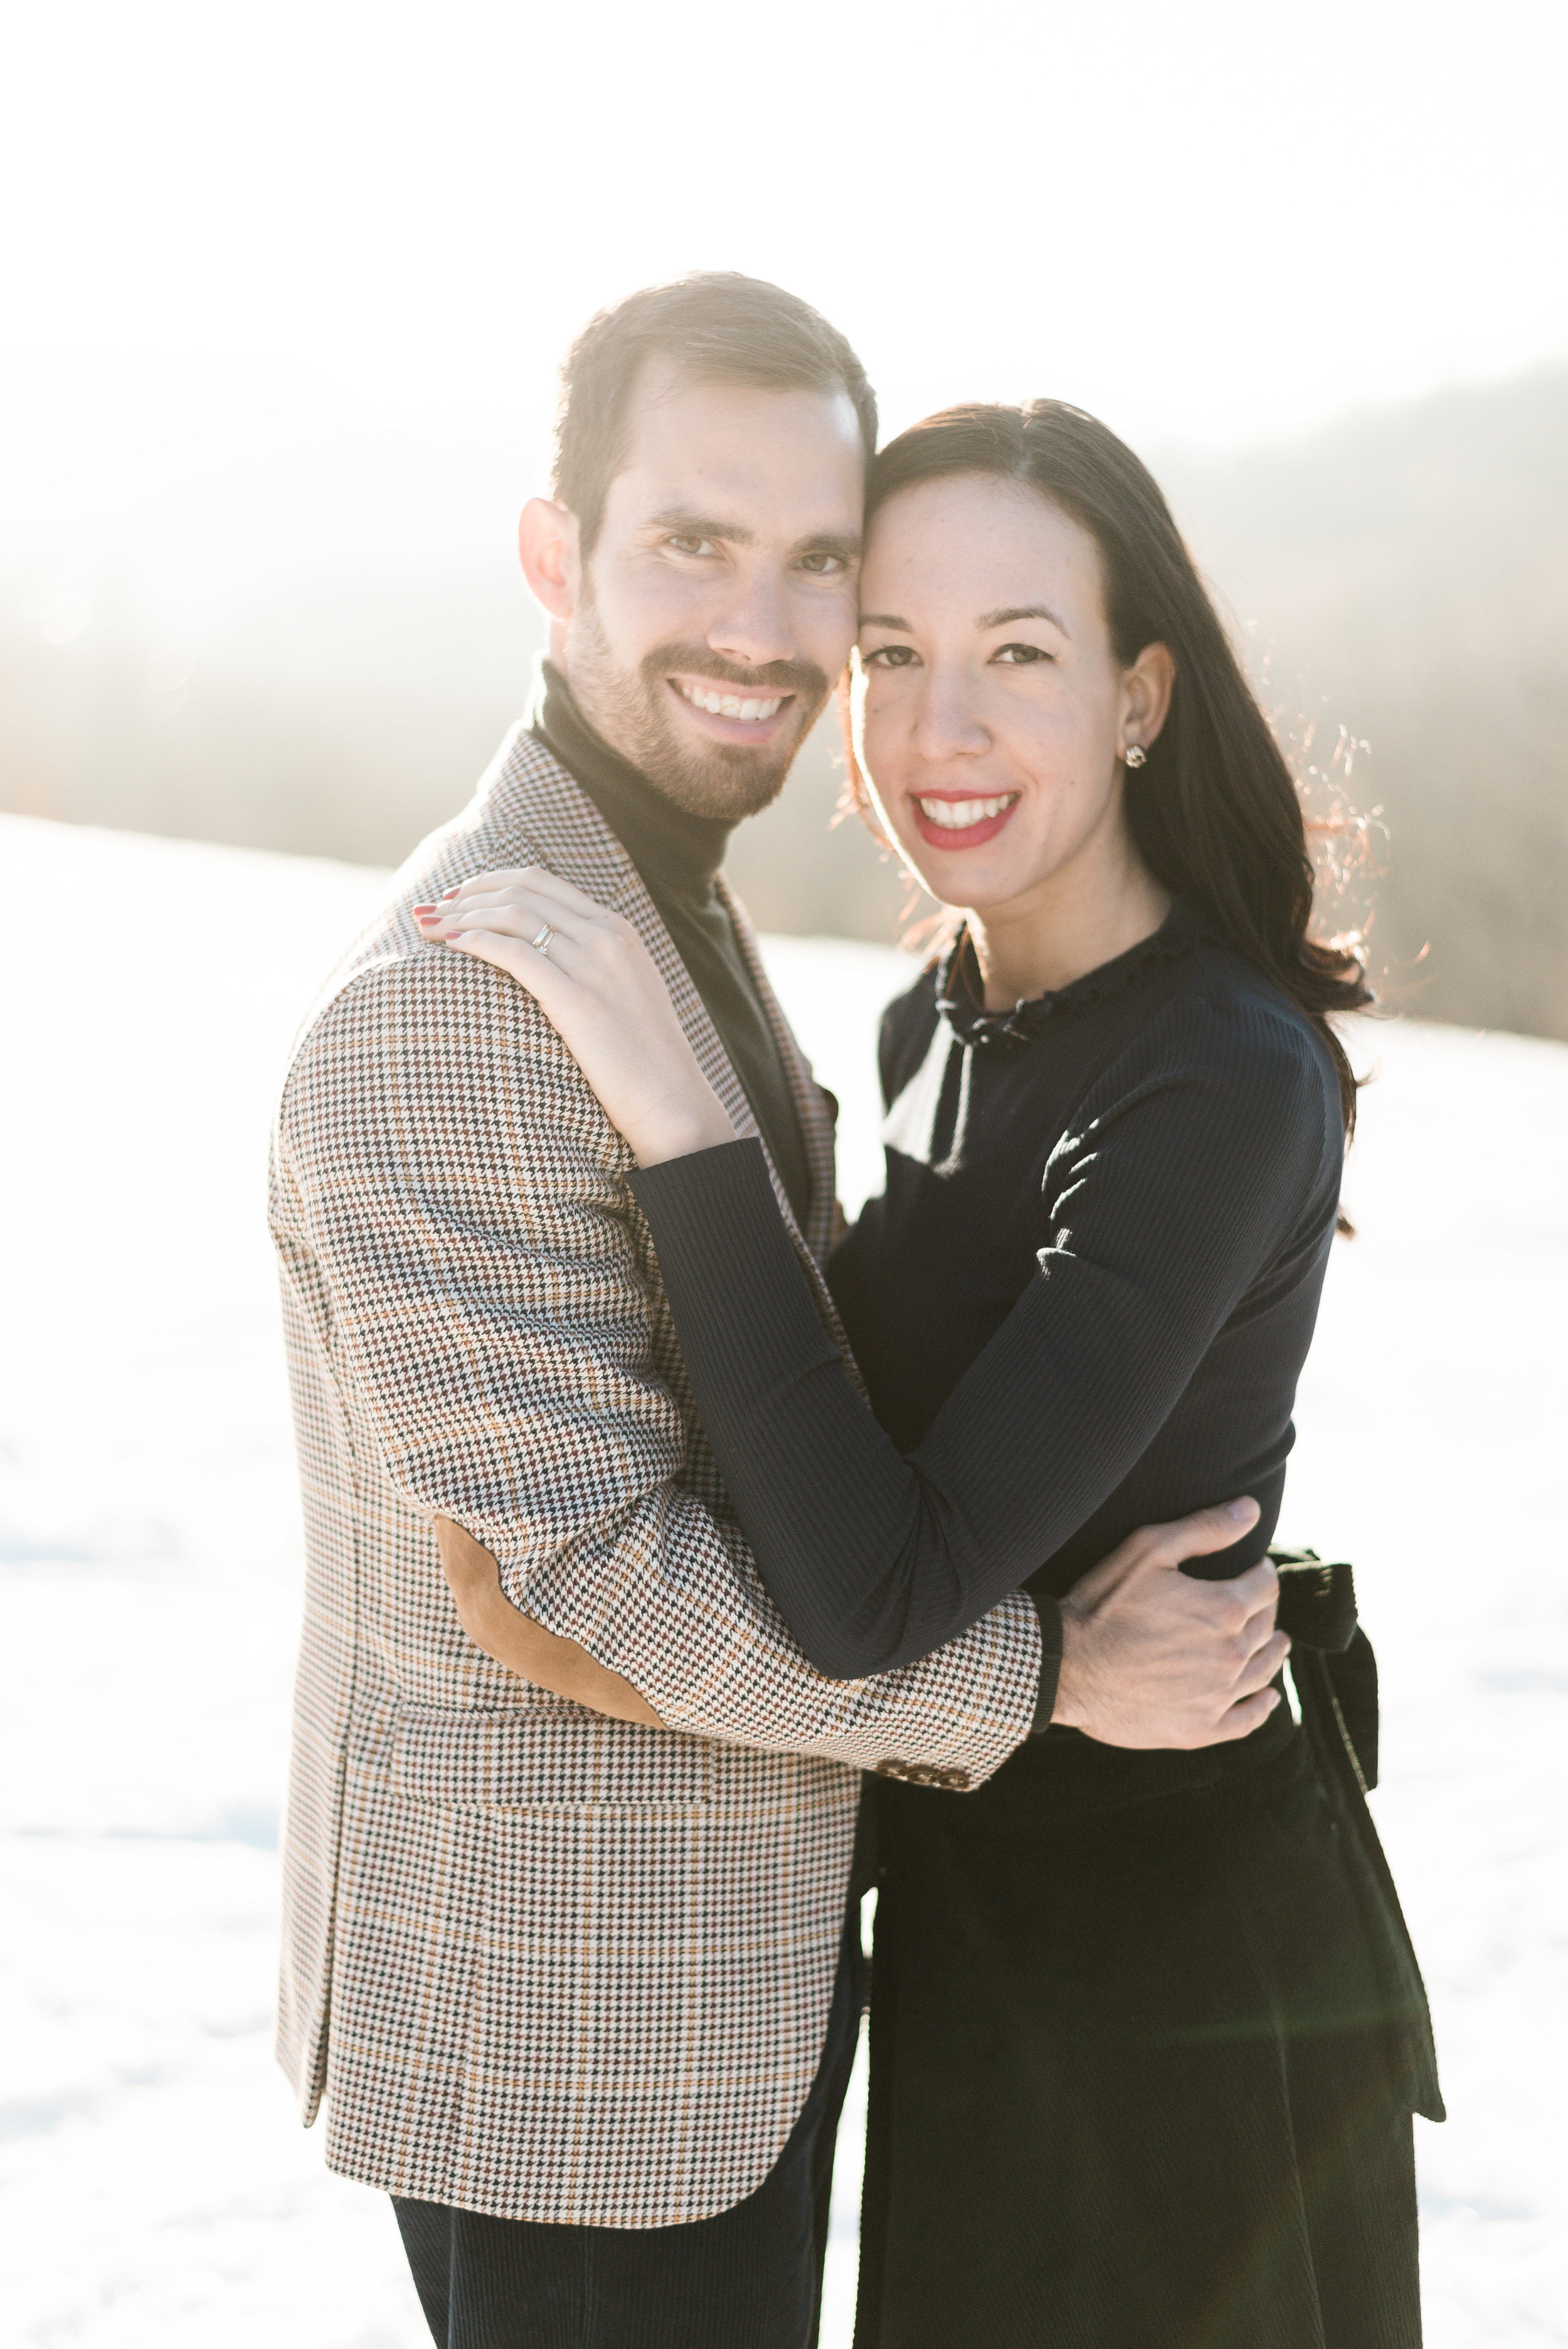 The Last breath of winter - An engagement session